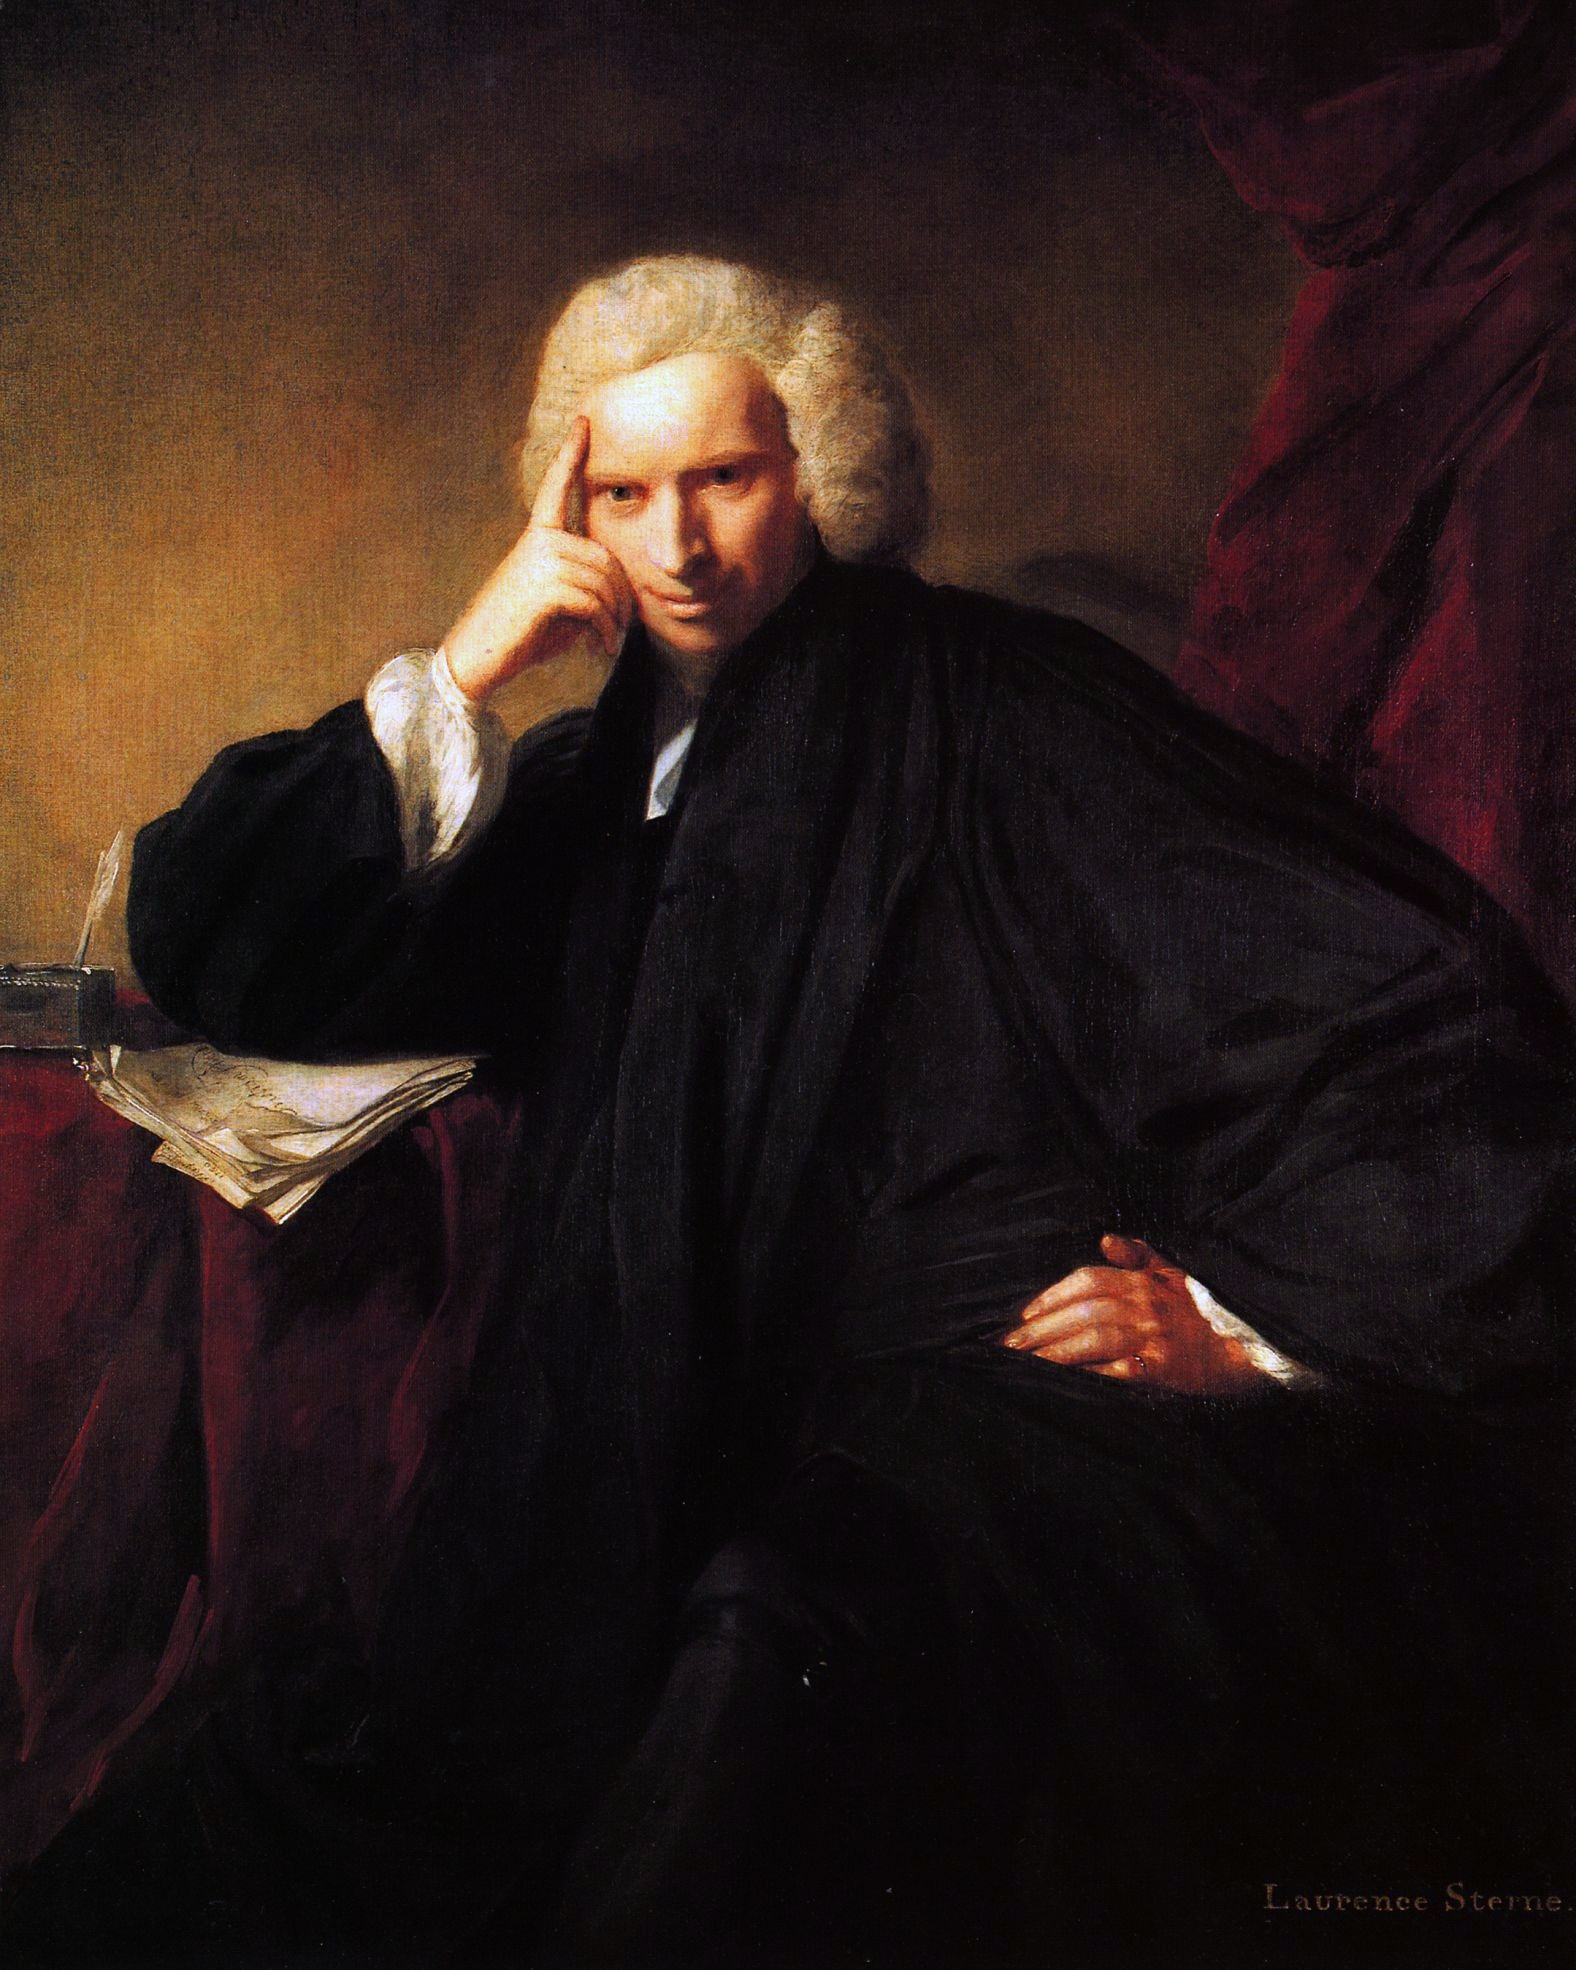 Laurence Sterne, by Joshua Reynolds. Original at the National Portrait Gallery, London (NPG 5019). We usually assume that under Sterne's elbow is the finished manuscript of the first two volumes of his  Tristram Shandy -- but, as it is a book that famously struggled to get started, it might just as well be that we are capturing him, here, having just conceived it.